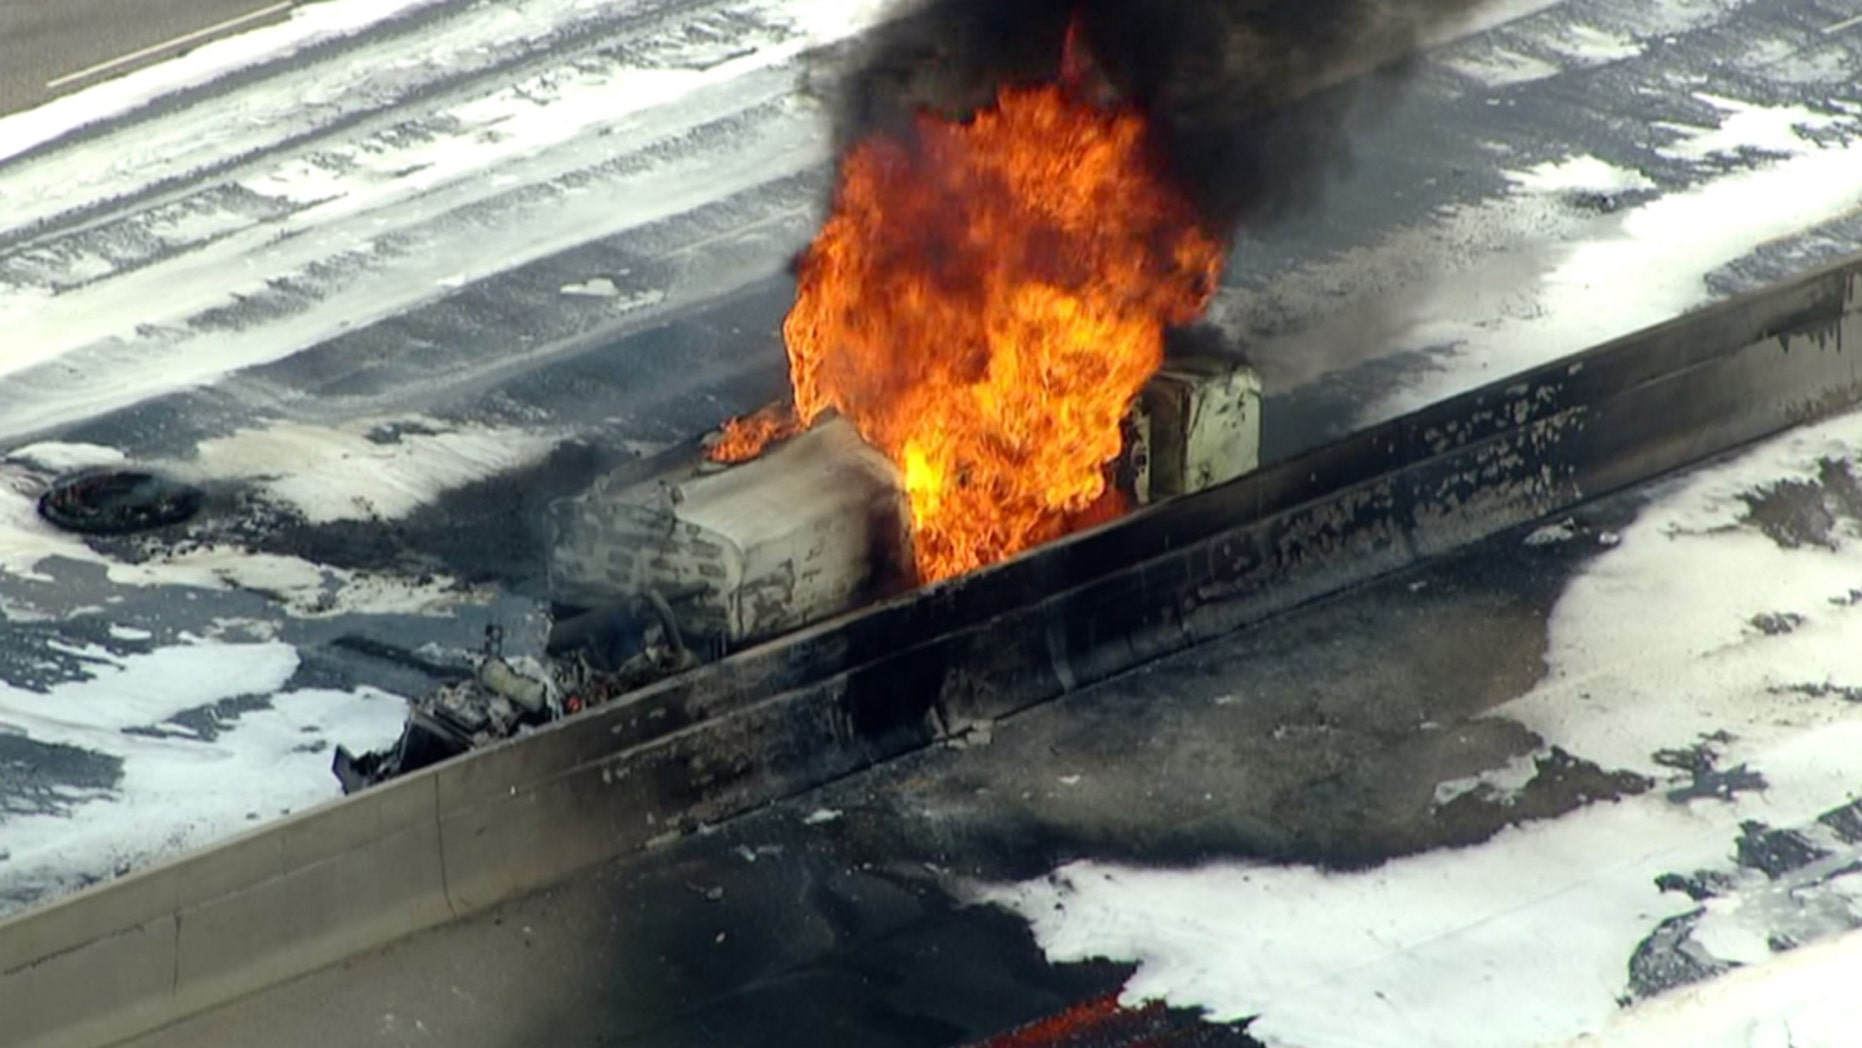 A fuel tanker caught fire and exploded a little before noon, according to the Colorado Department of Transportation.